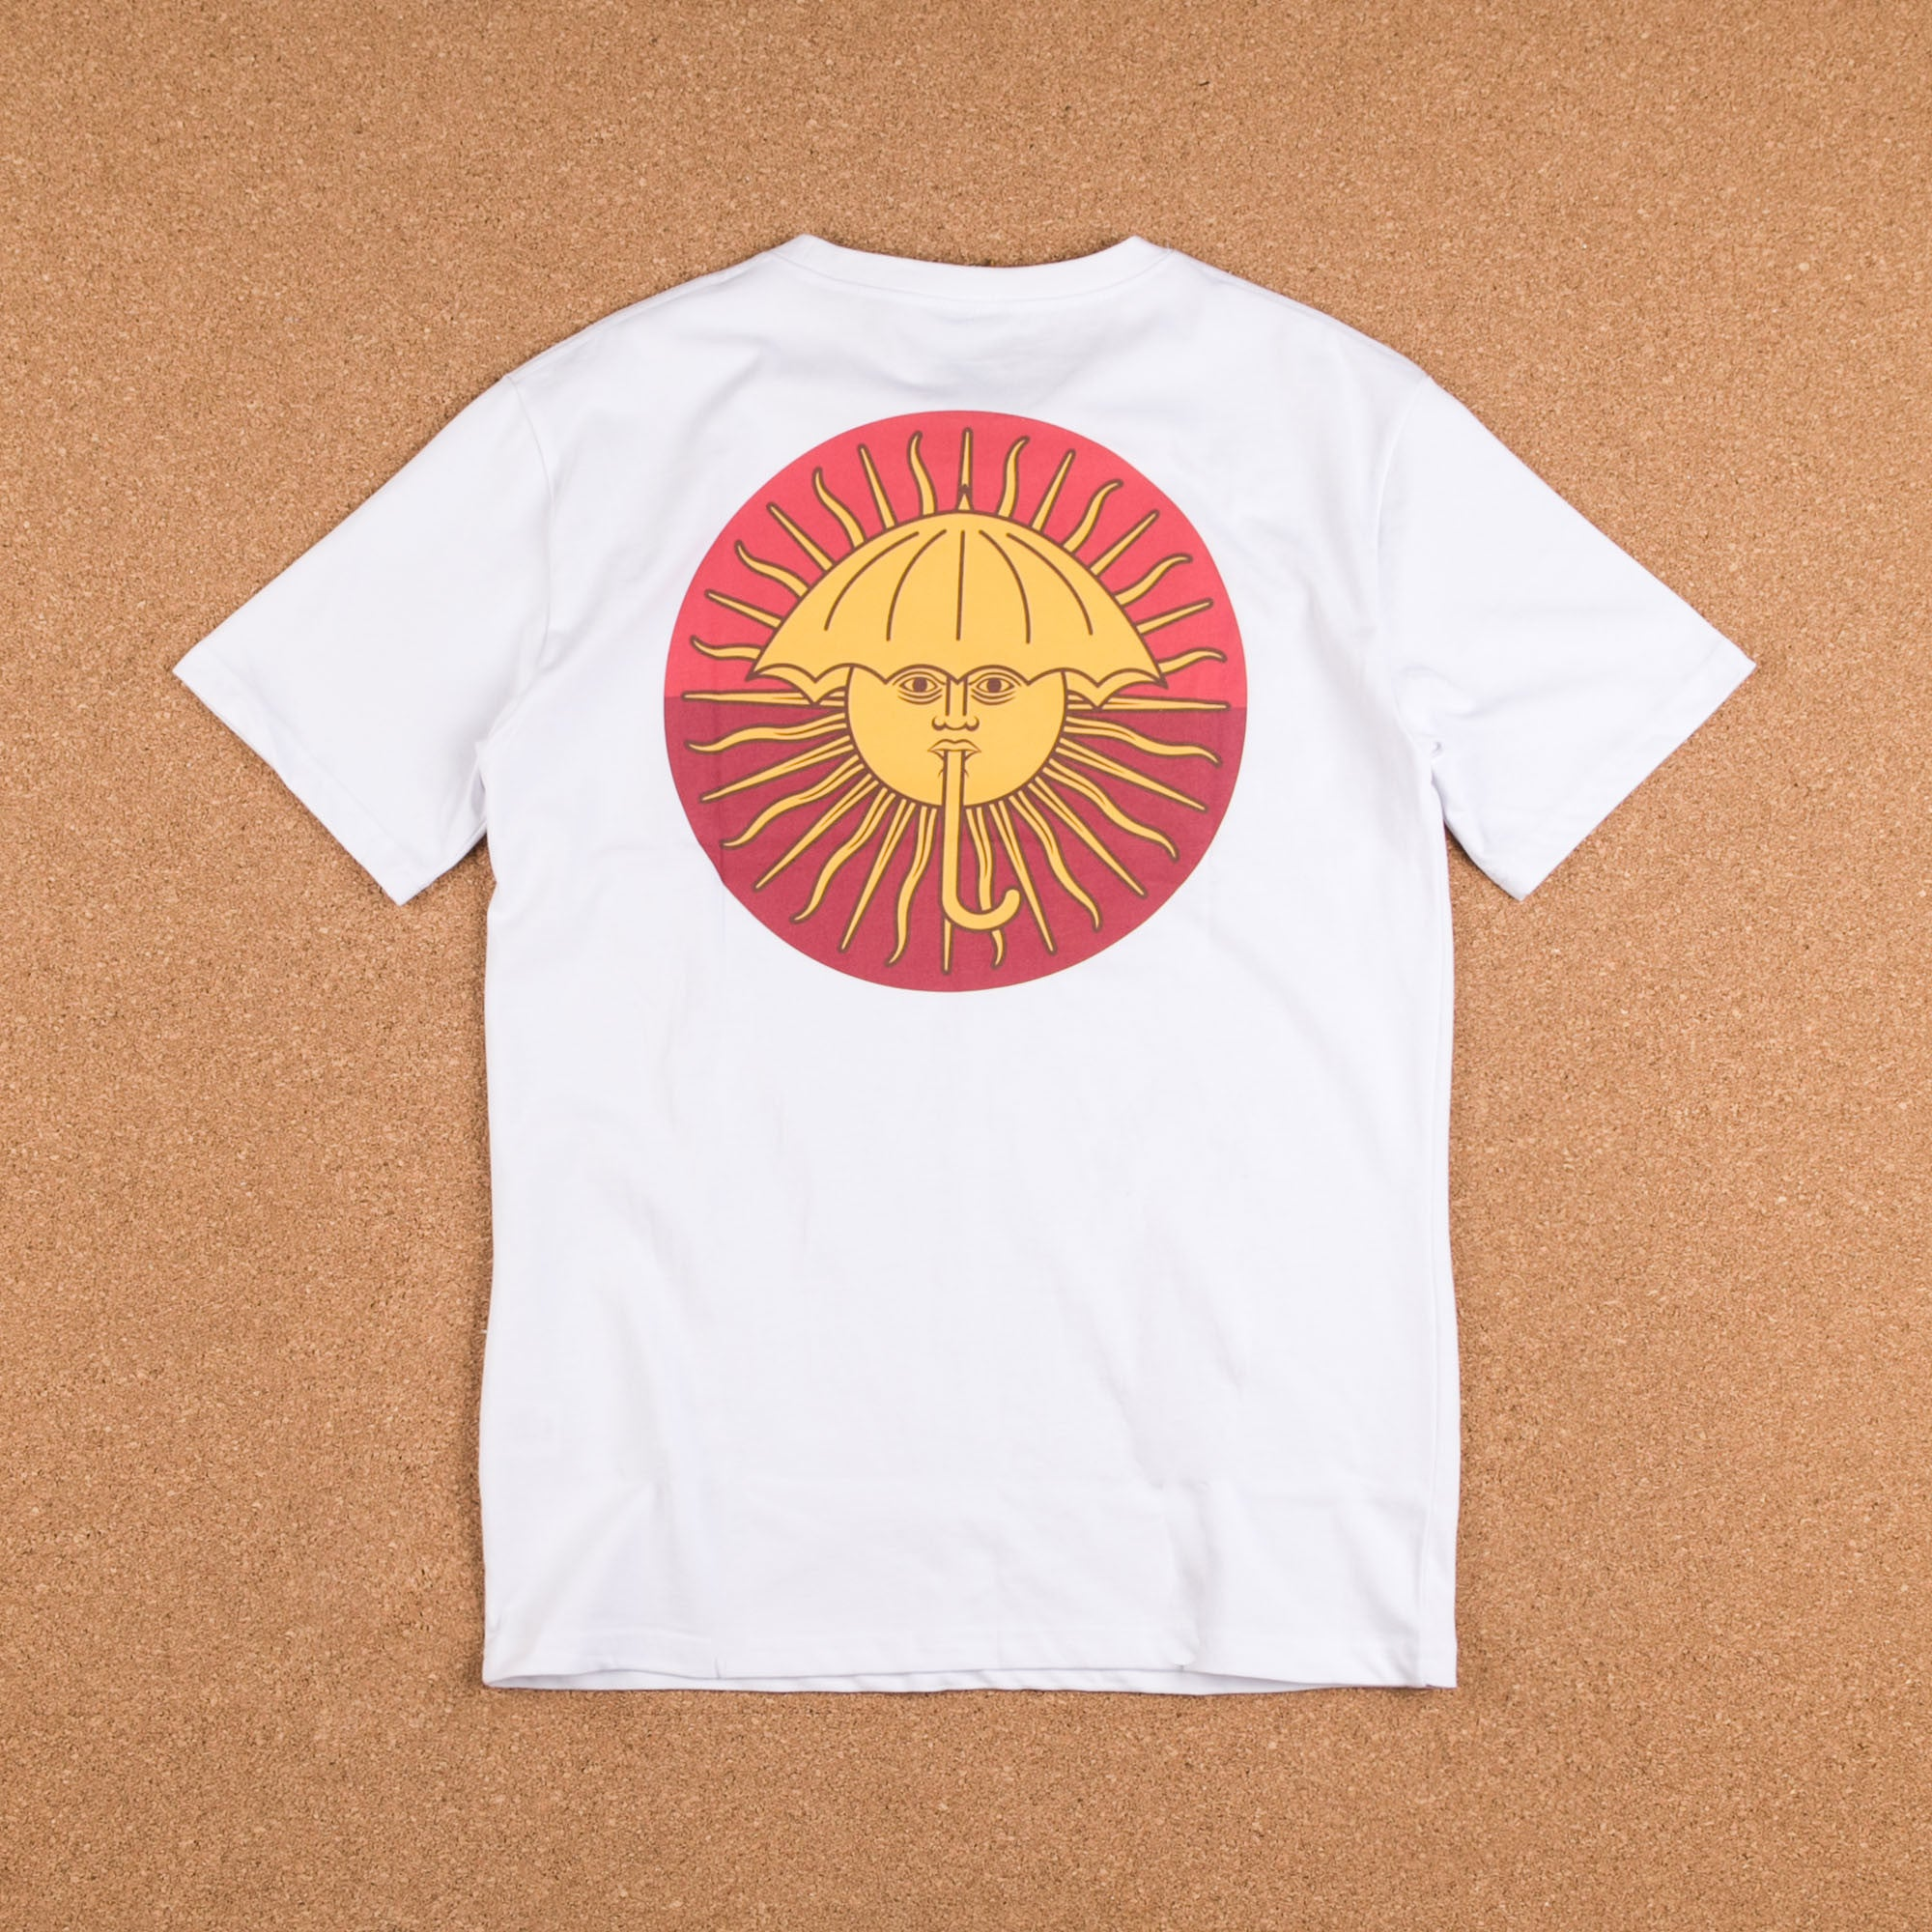 Helas Parasol De Mayo T-Shirt - White / Red / Burgundy